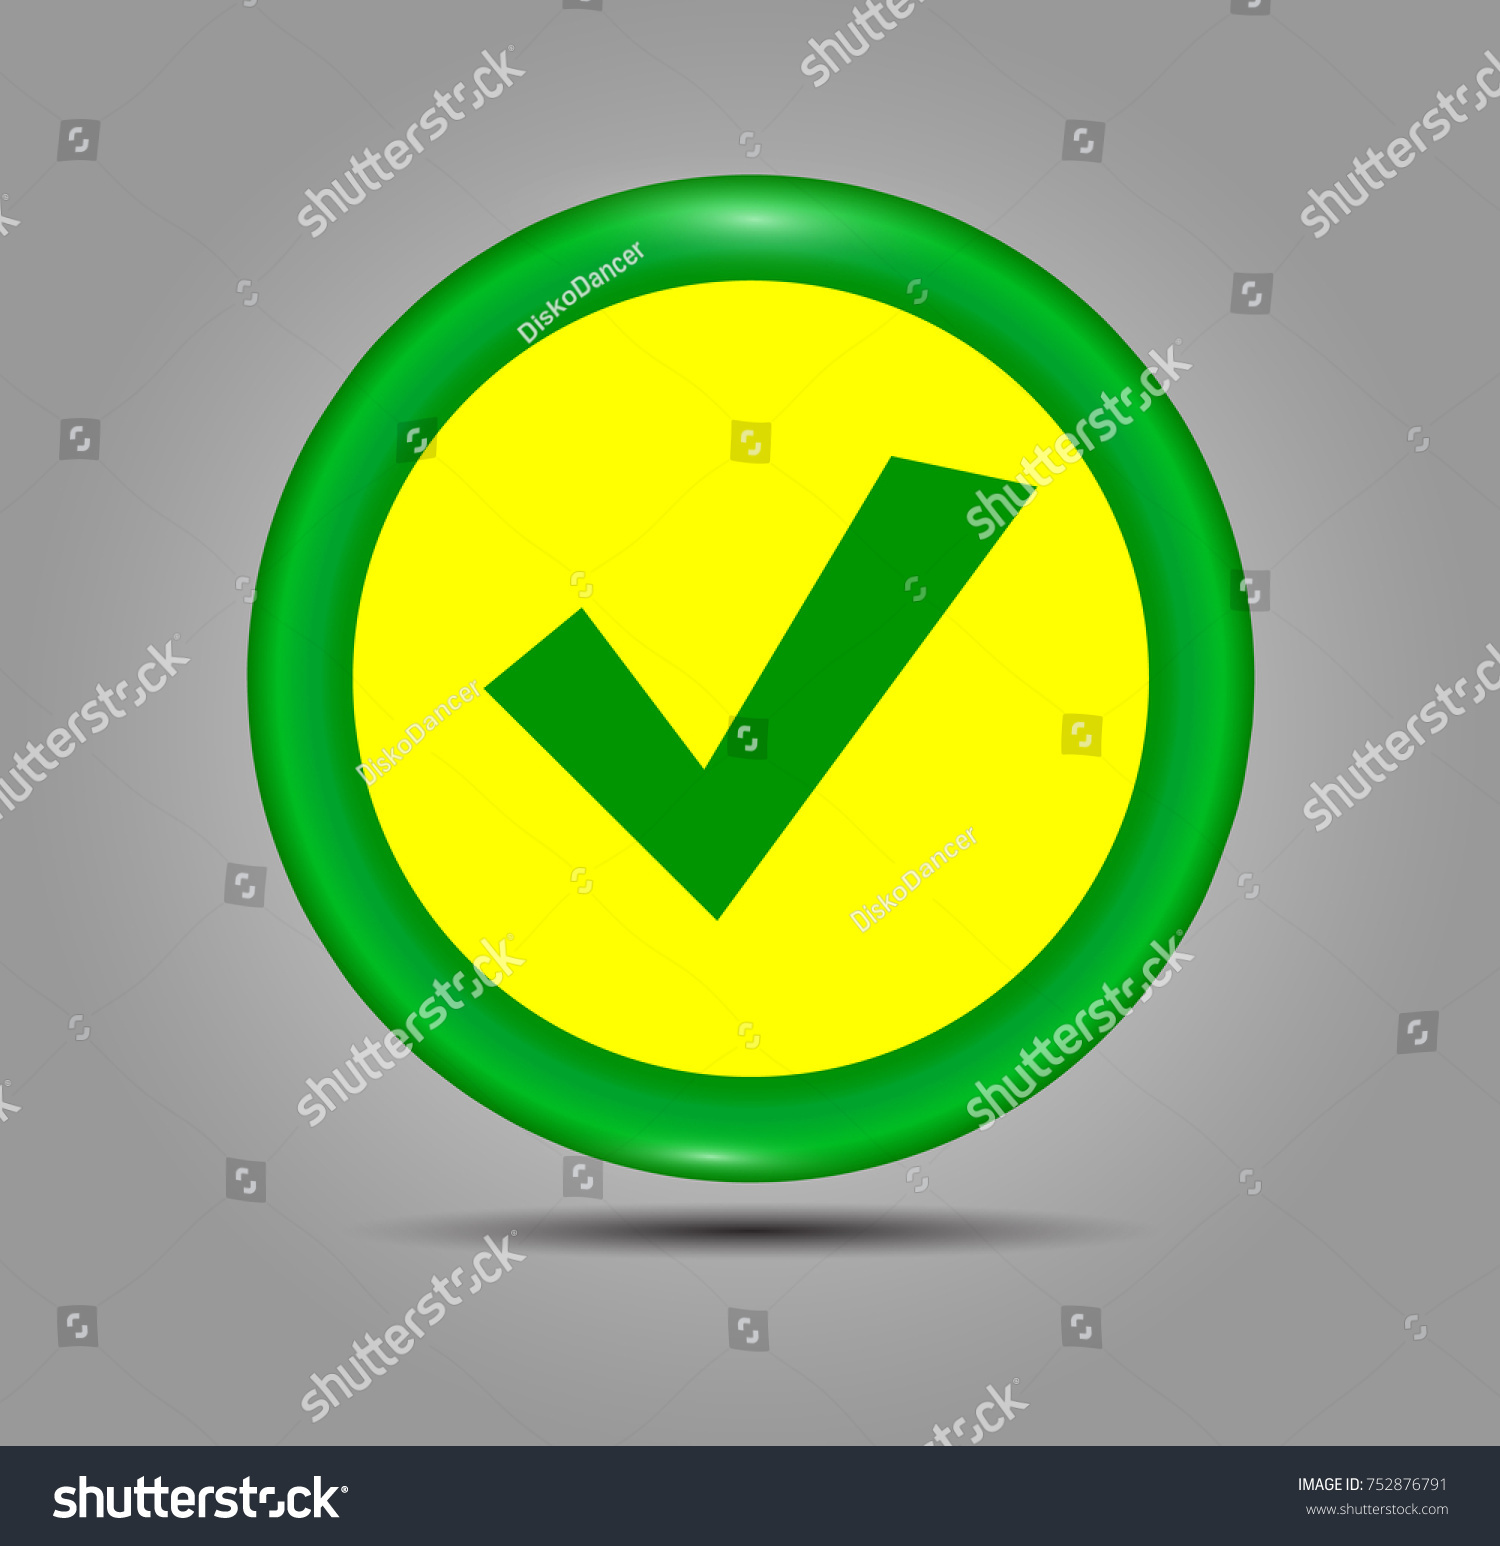 Green check mark icon circle tick stock vector 752876791 shutterstock green check mark icon in a circle tick symbol in green color vector illustration biocorpaavc Image collections